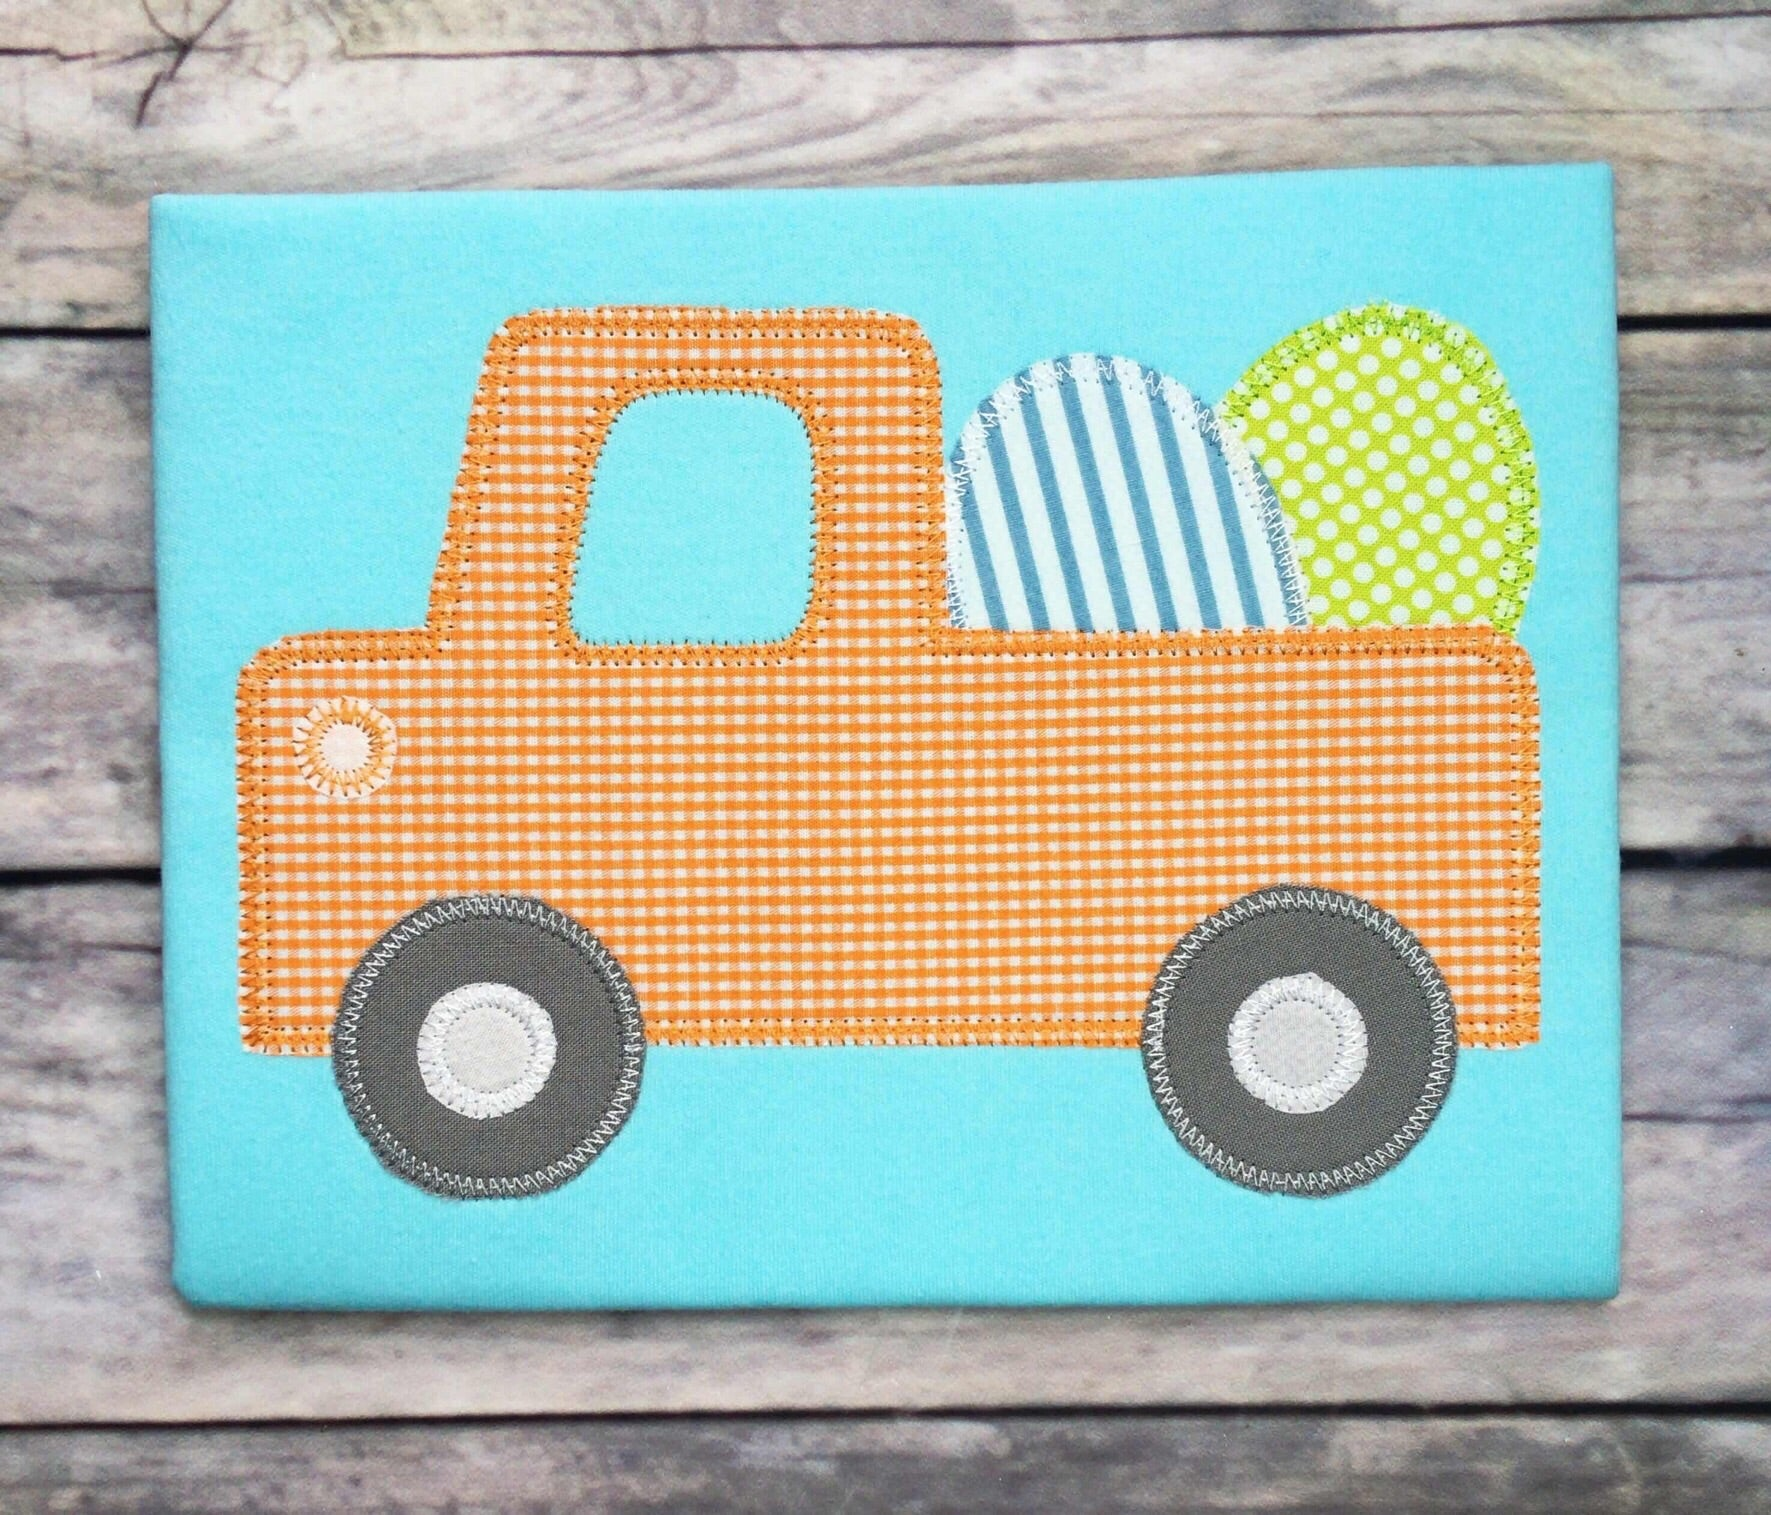 Cute Truck Eggs Zig Zag Stitch Applique Design